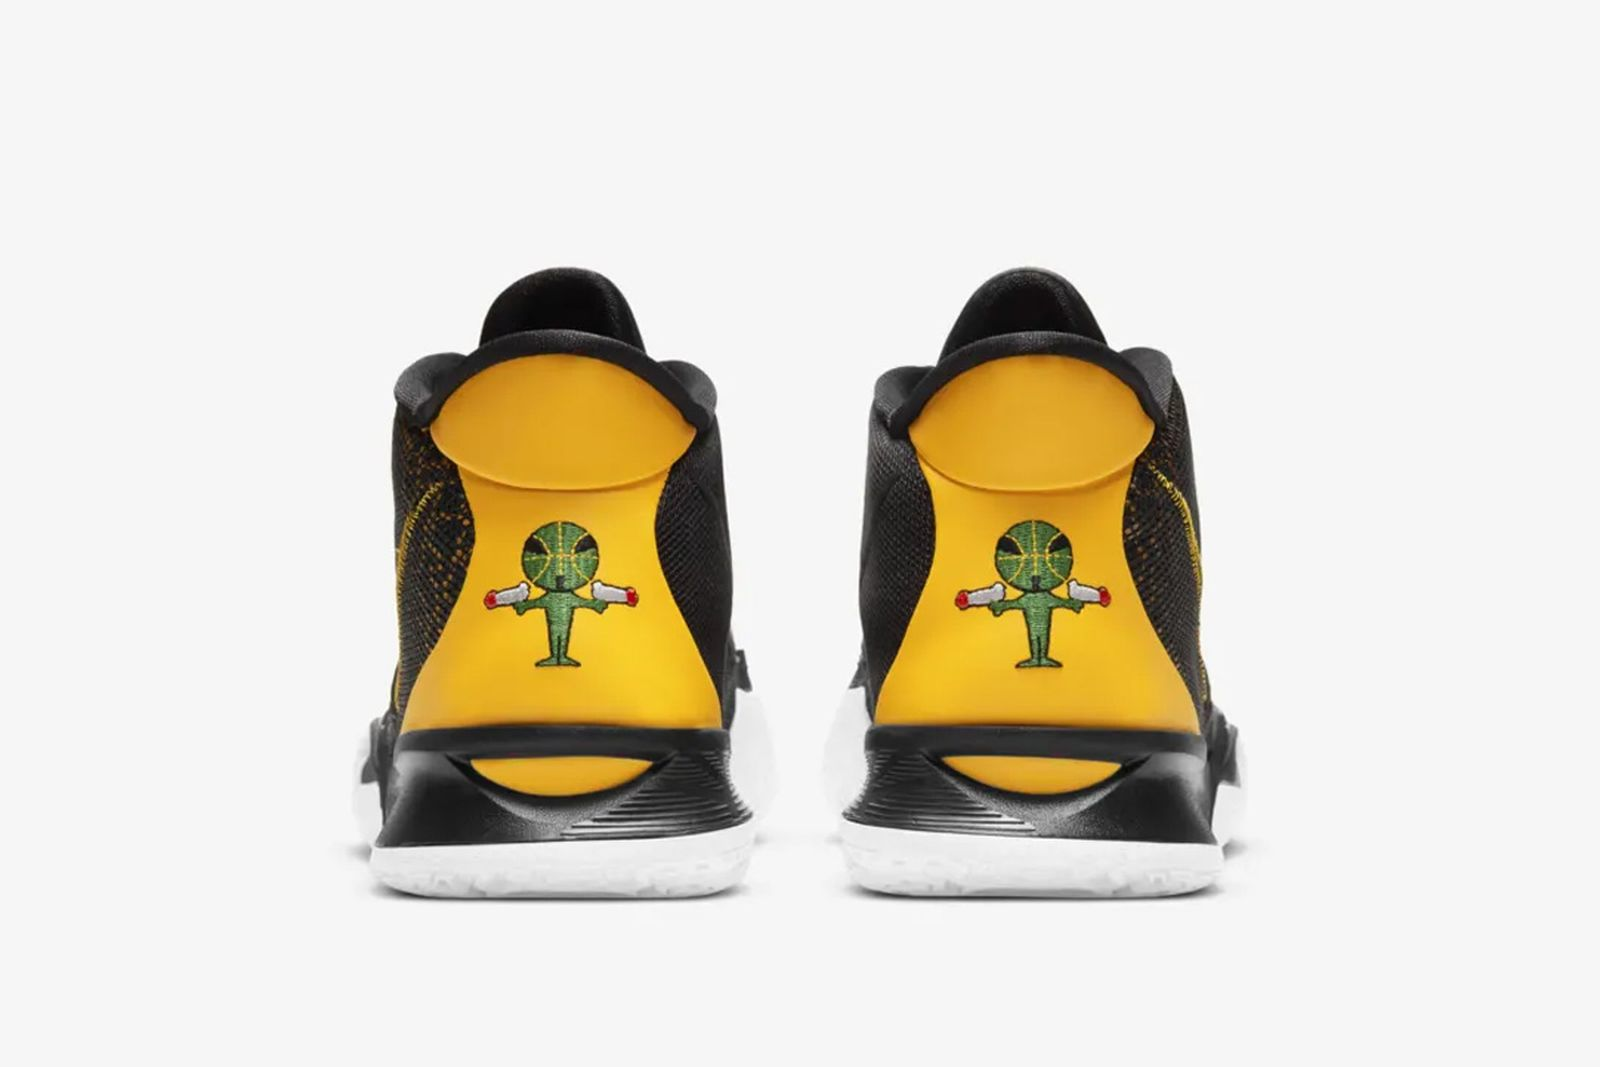 nike-air-force-1-rayguns-release-date-price-01